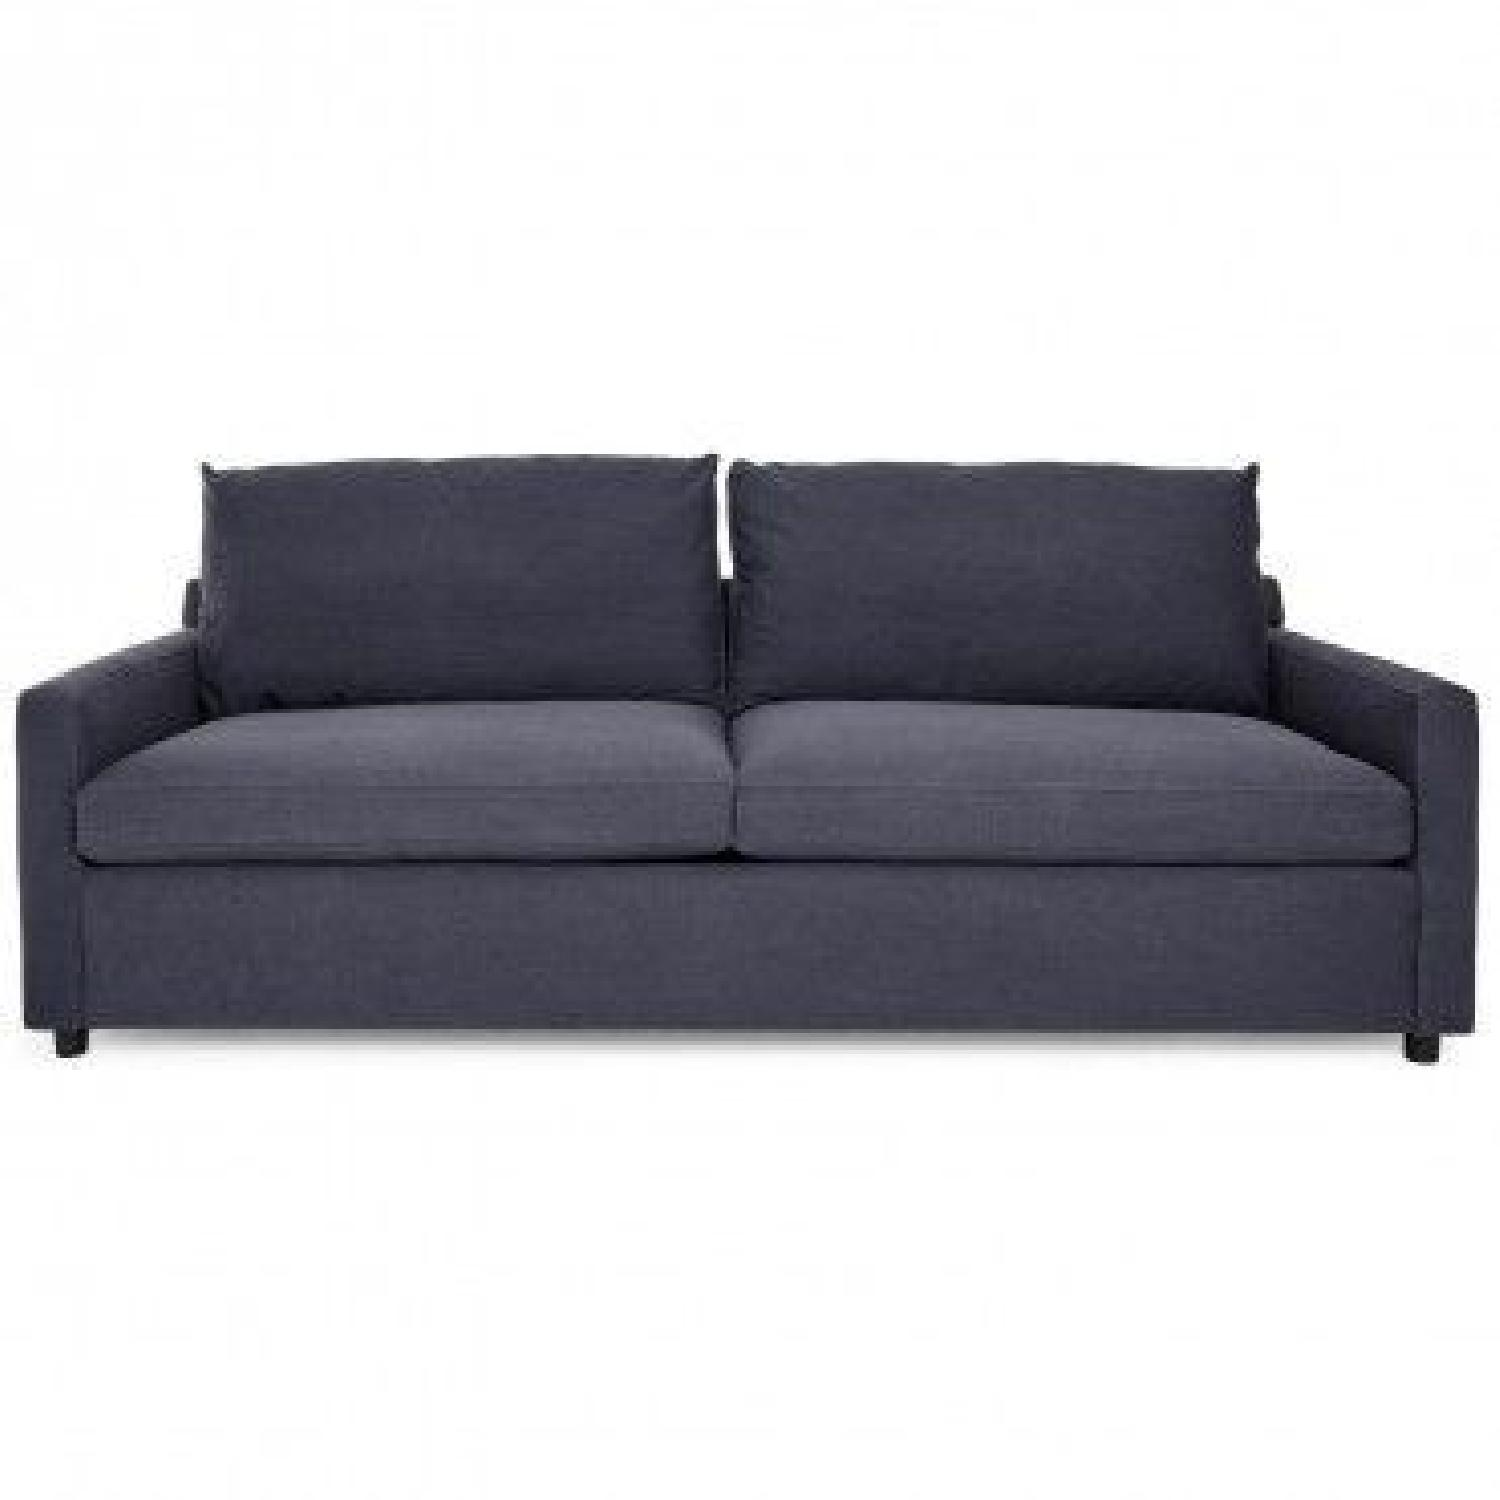 ABC Carpet and Home Queen Sleeper Sofa - image-0